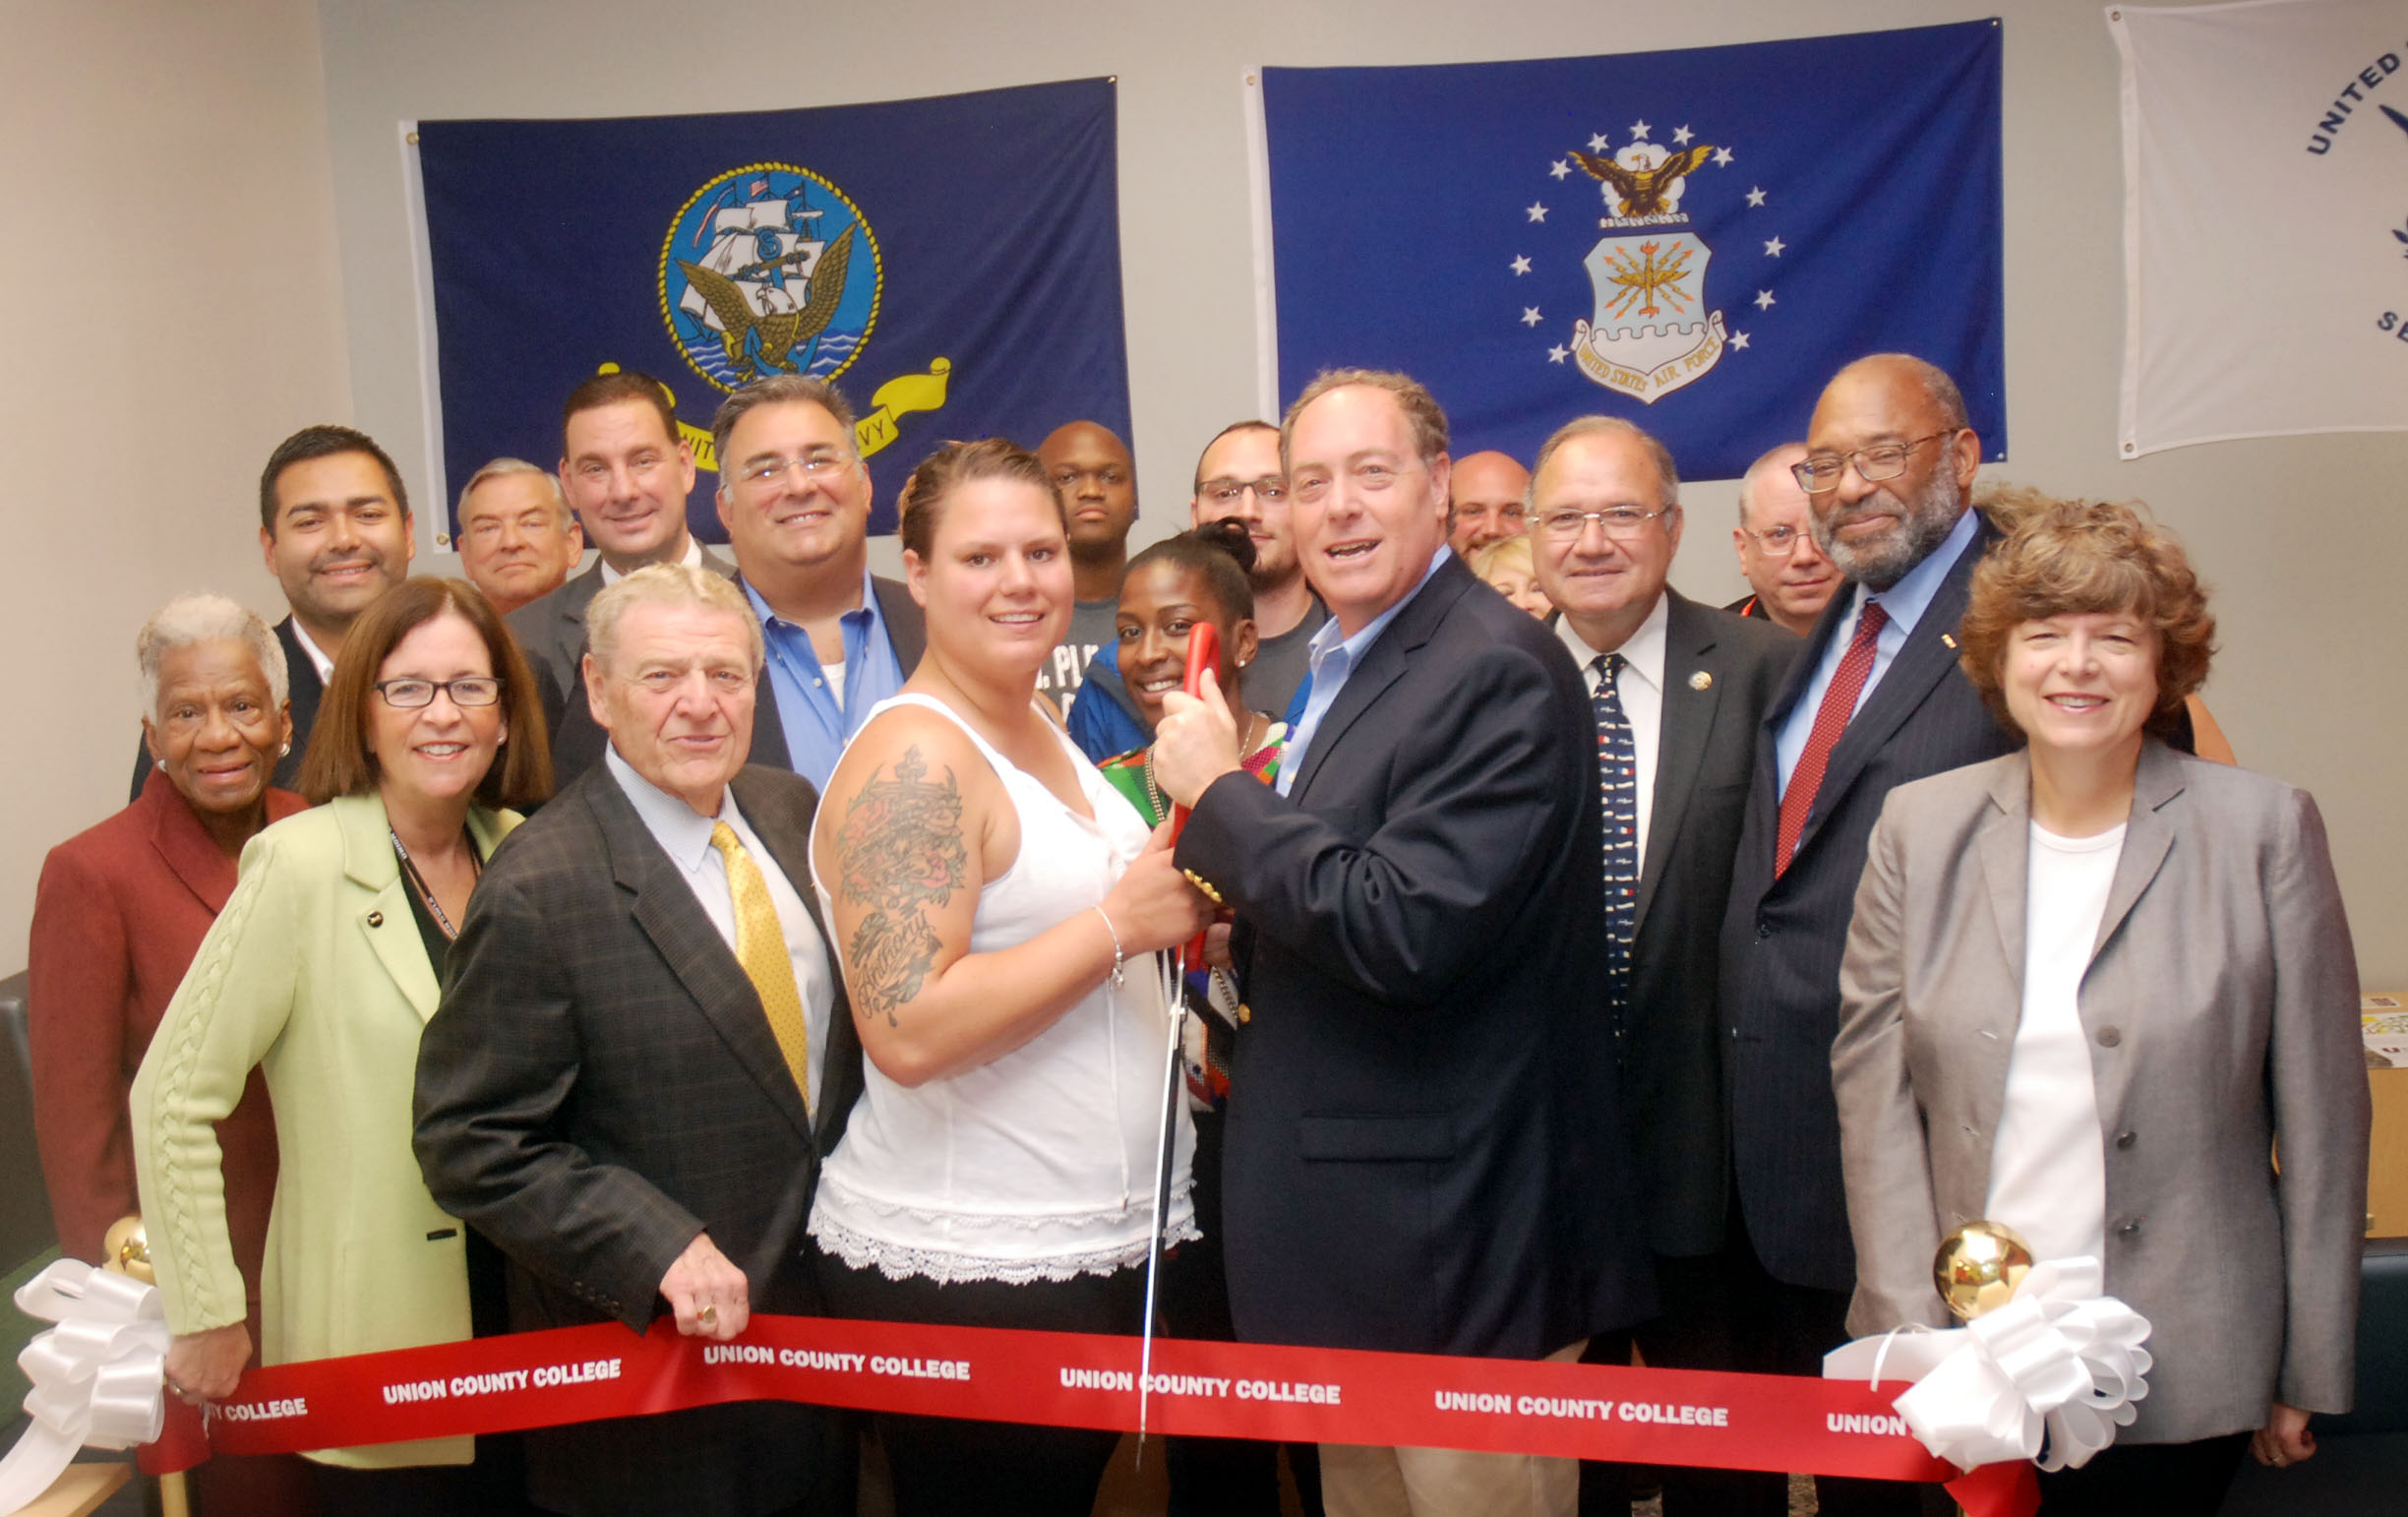 New jersey union county cranford - Union County College Opens Veterans Center On Cranford Campus Union County